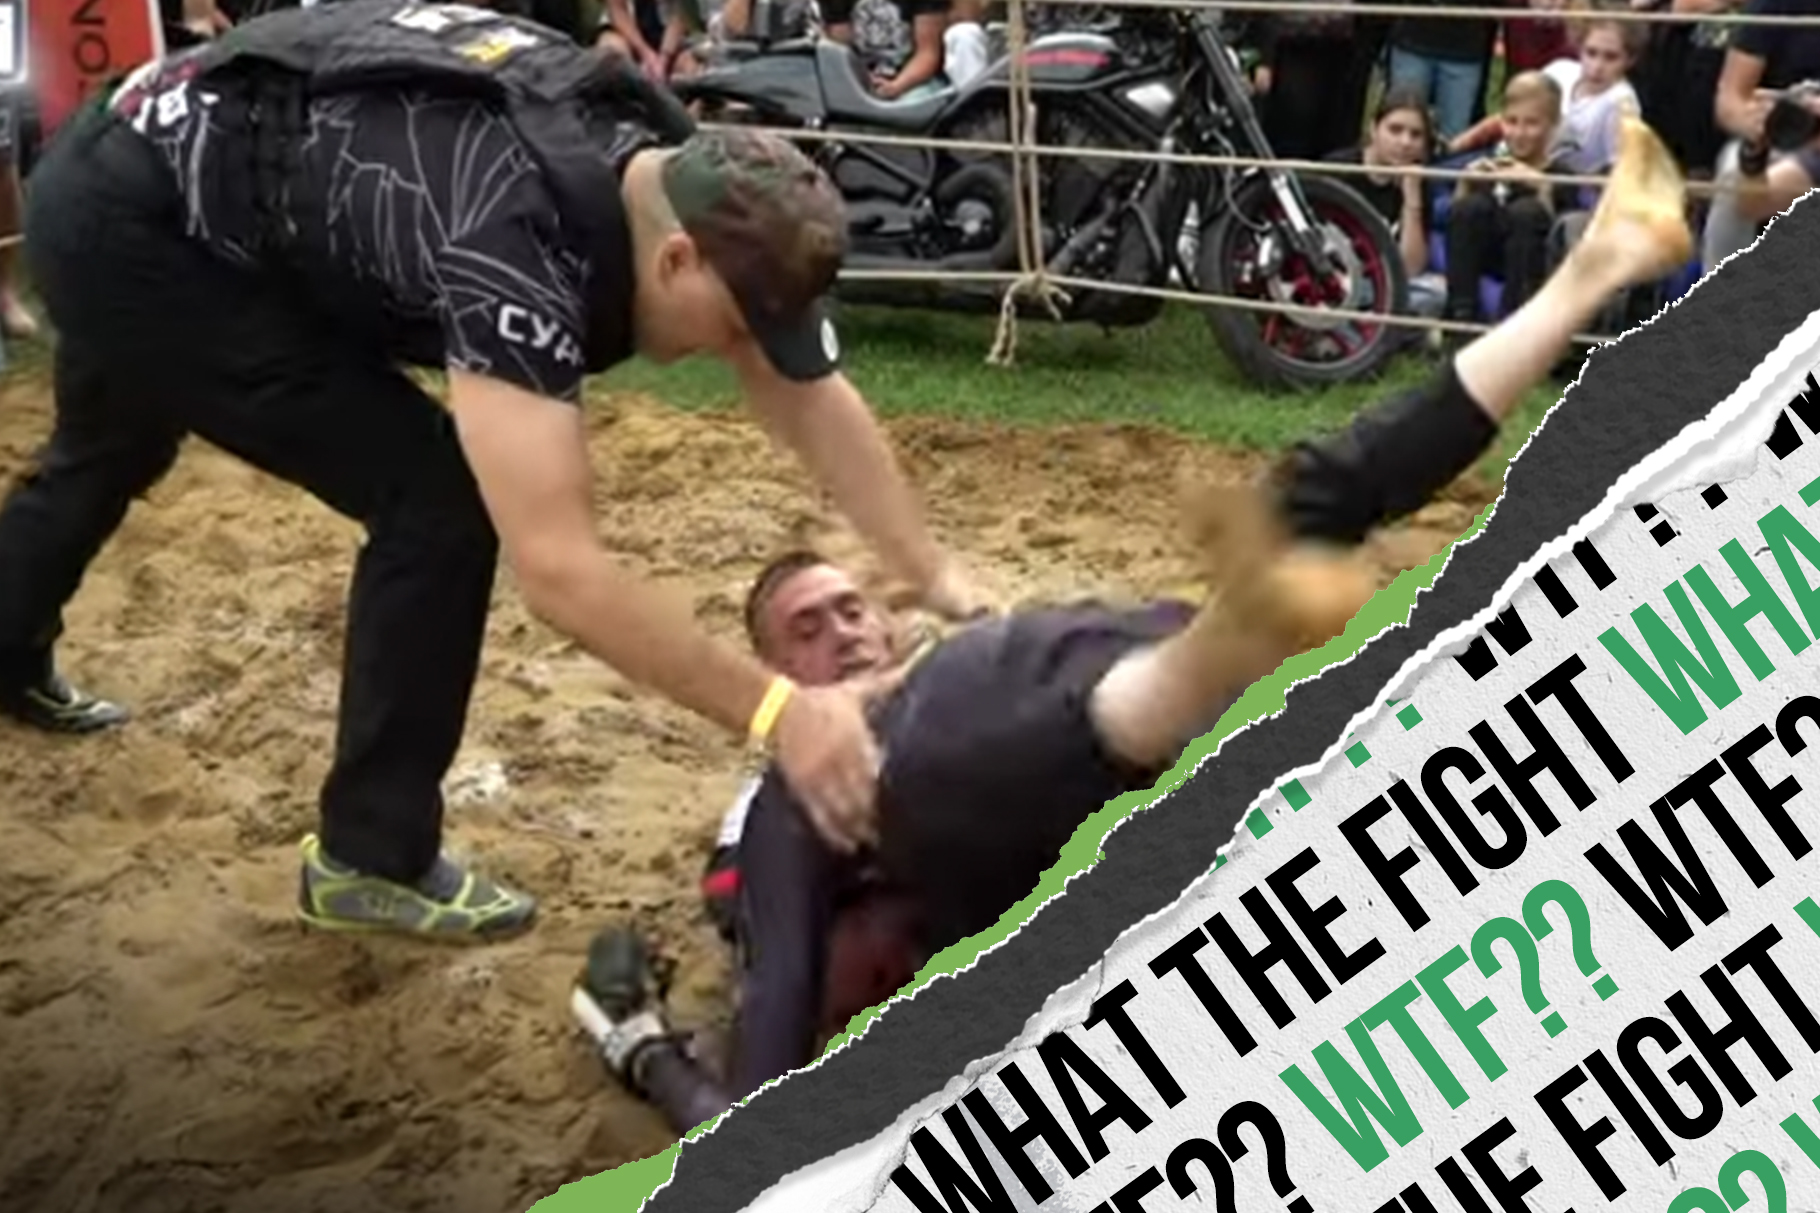 WTF? Jeet Kune Do mishaps and refs in bullet-proof vests